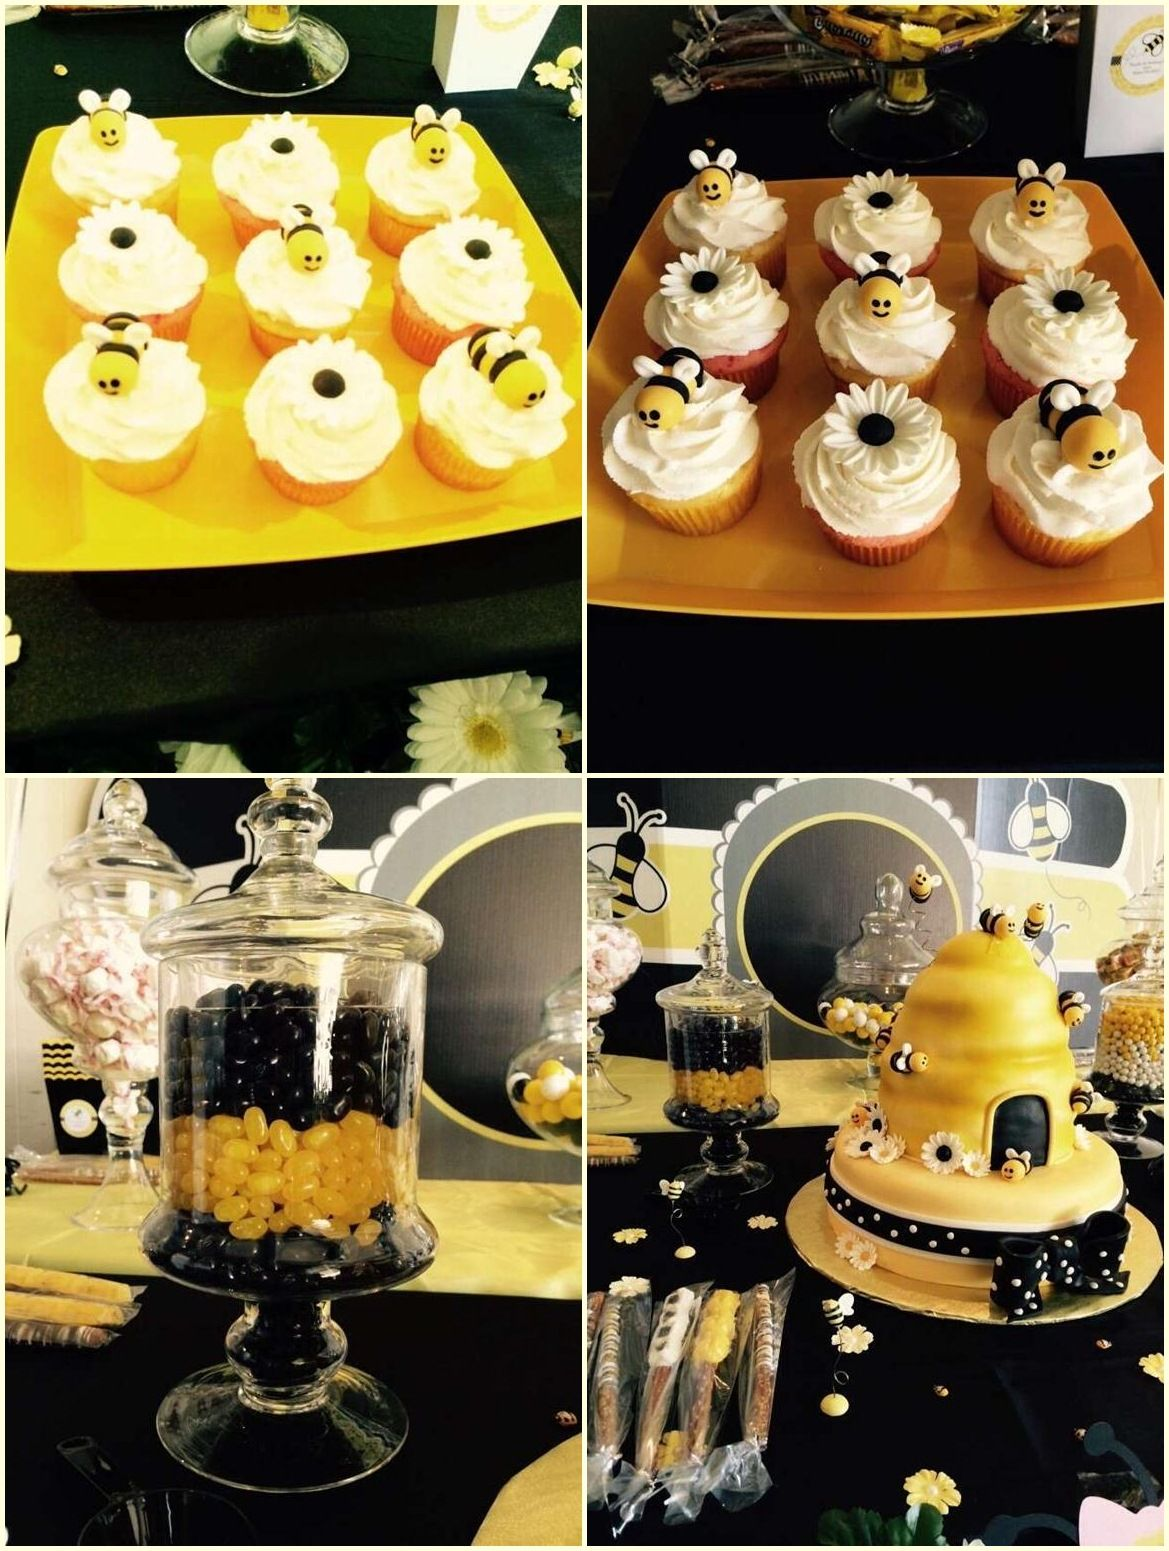 Bumble Bee Party Food Ideas Birthday Theme Costume At City